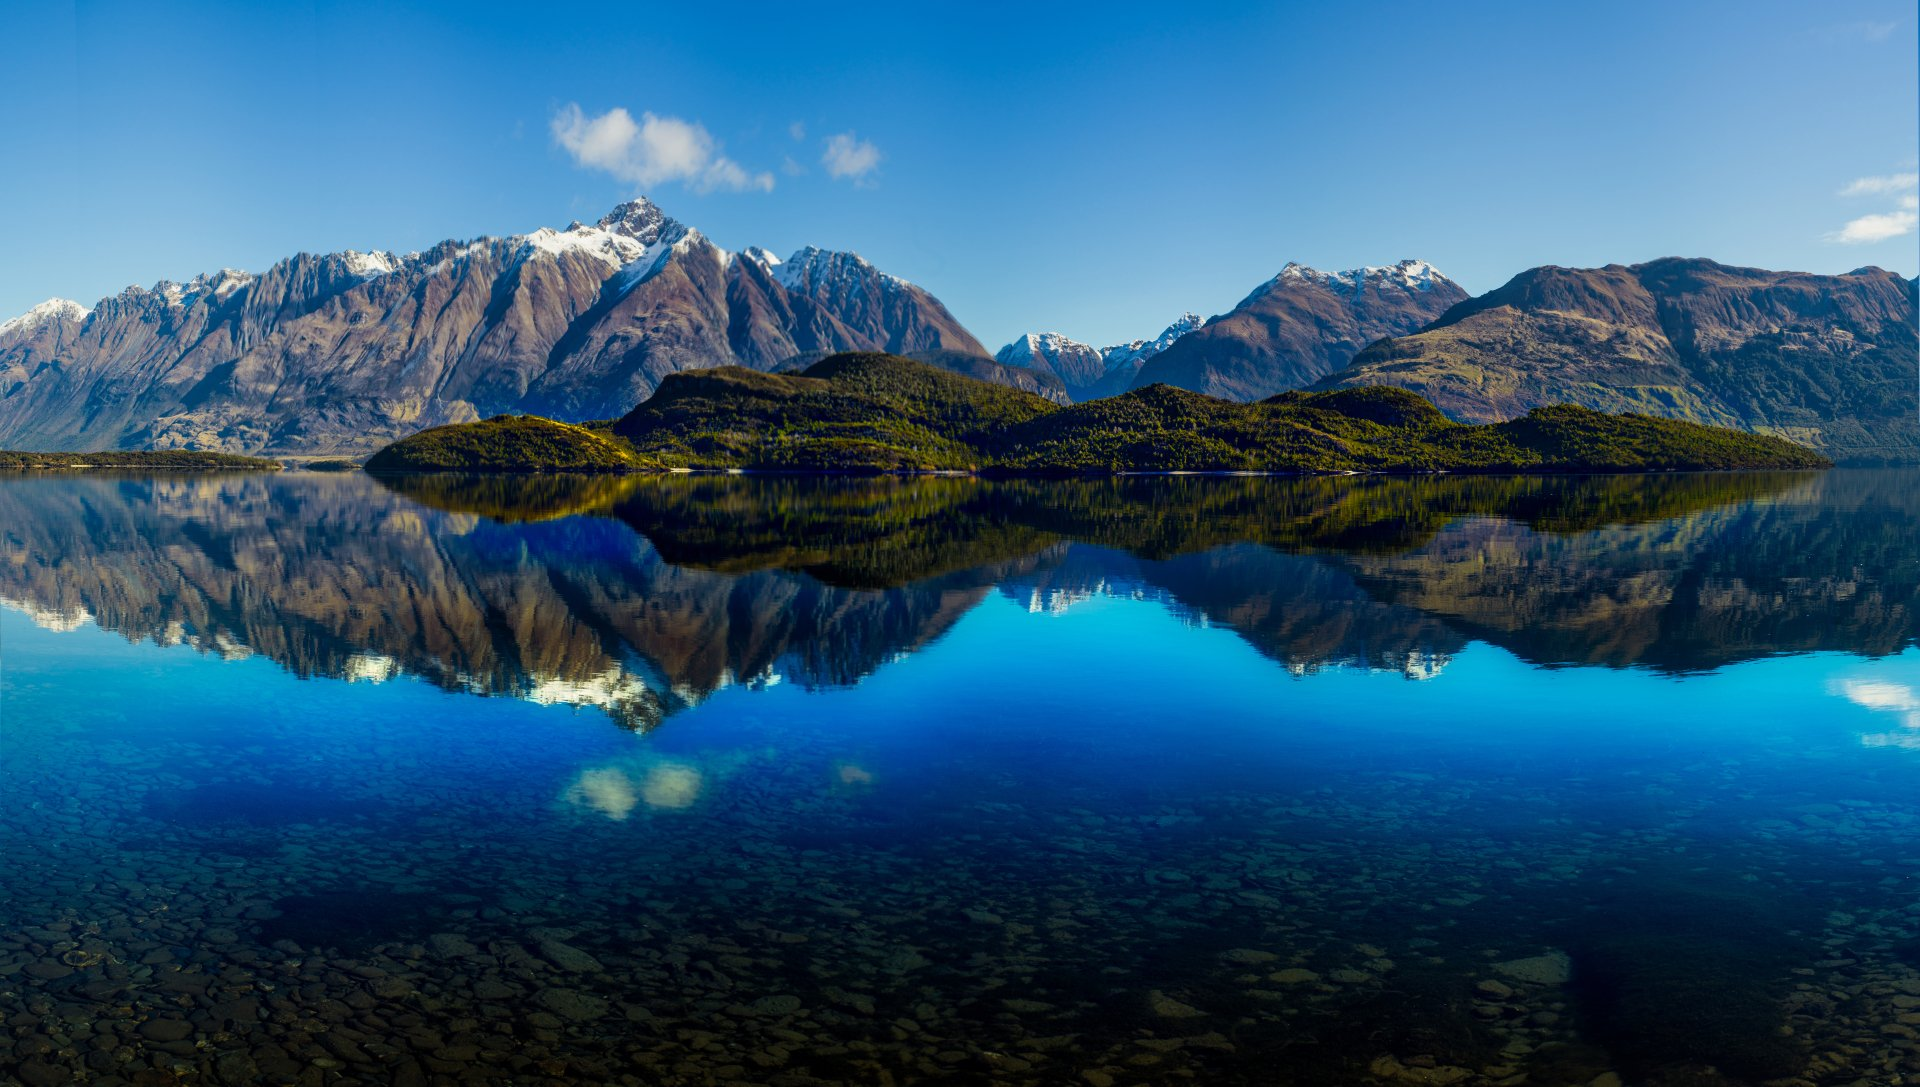 Glenorchy Panorama 8k Ultra HD Wallpaper